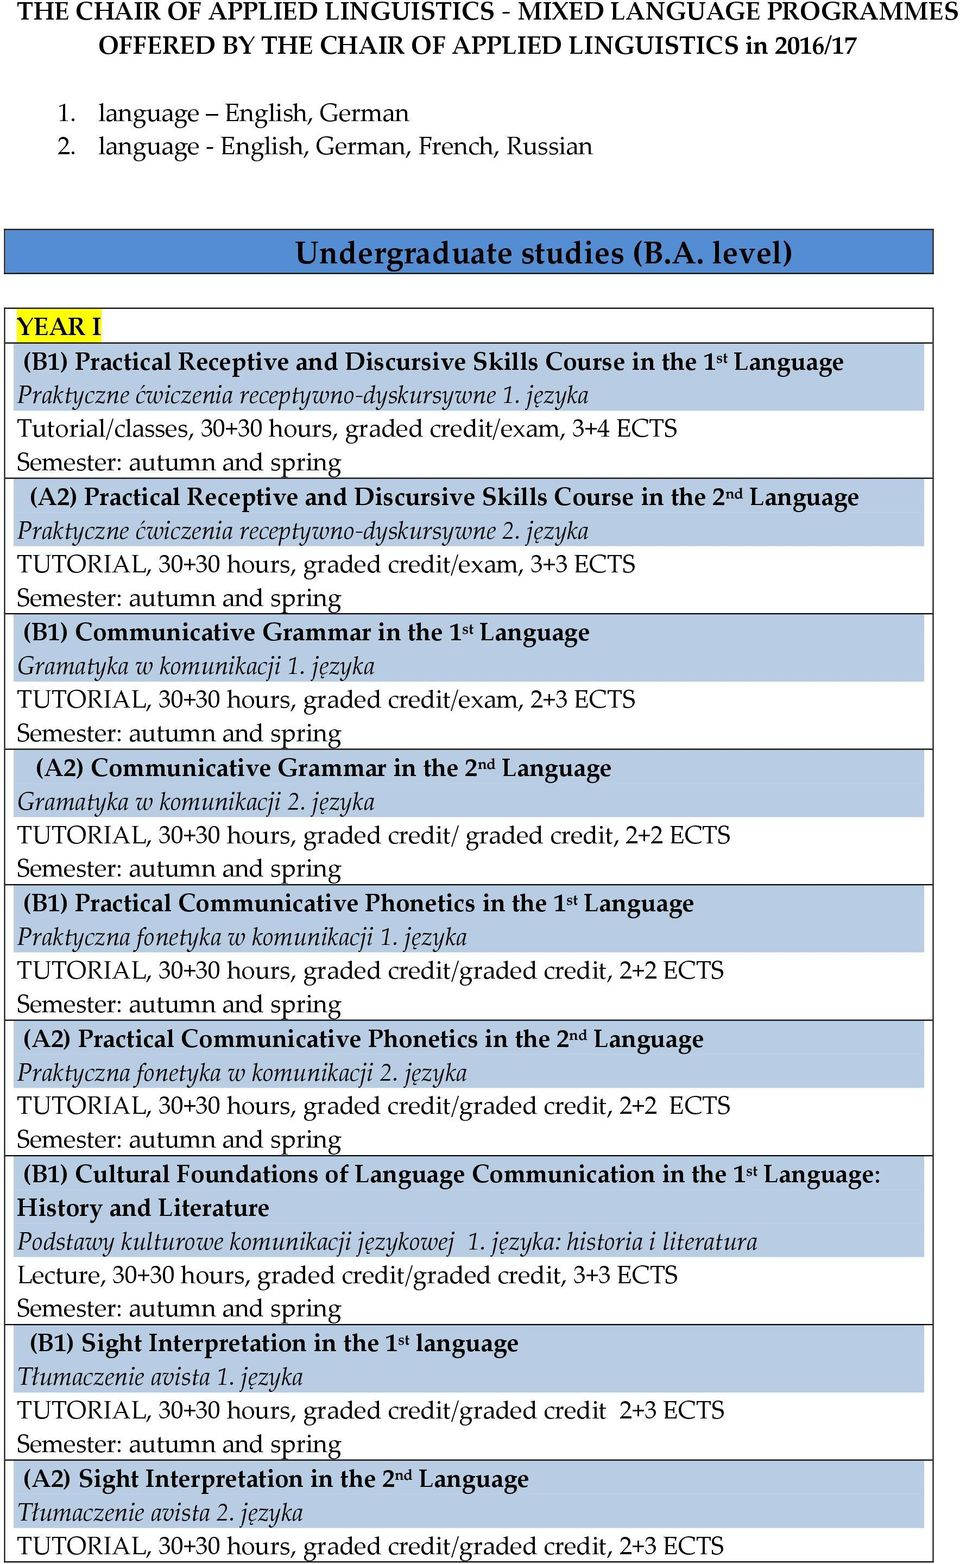 level) YEAR I (B1) Practical Receptive and Discursive Skills Course in the 1 st Language Tutorial/classes, 30+30 hours, graded credit/exam, 3+4 ECTS (A2) Practical Receptive and Discursive Skills